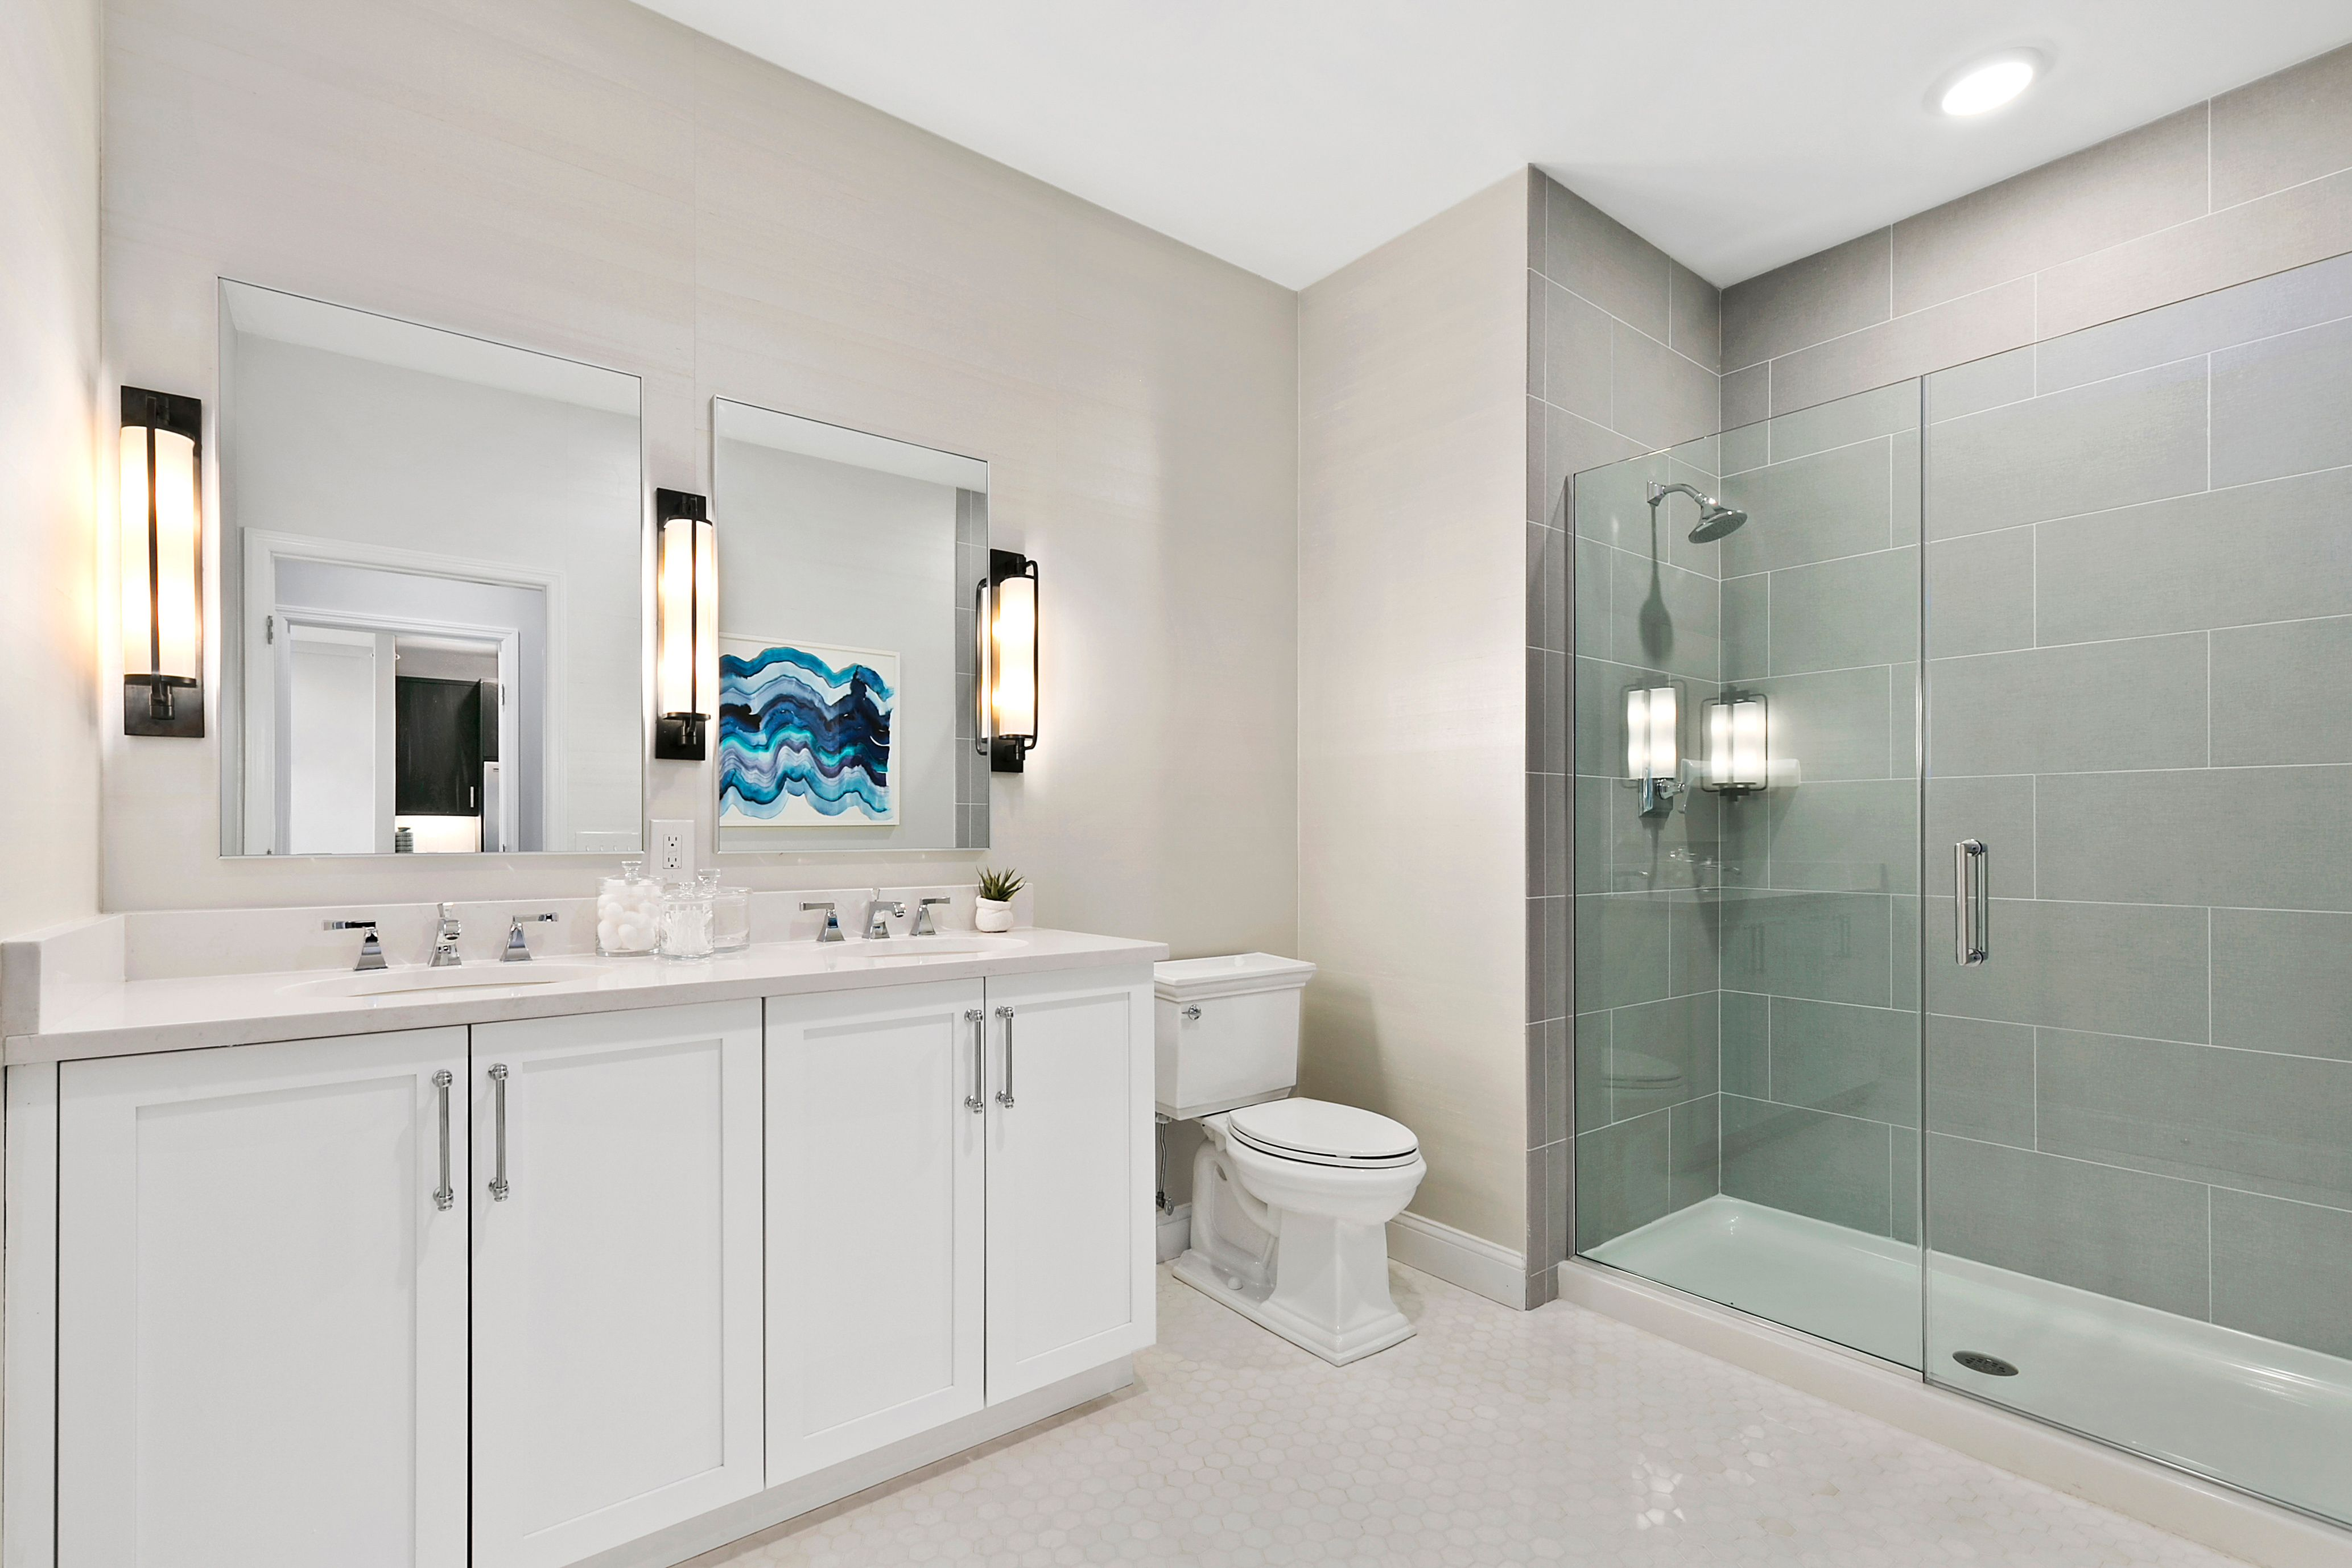 Bathroom featured in The Bradford By Beechwood Homes in Nassau-Suffolk, NY